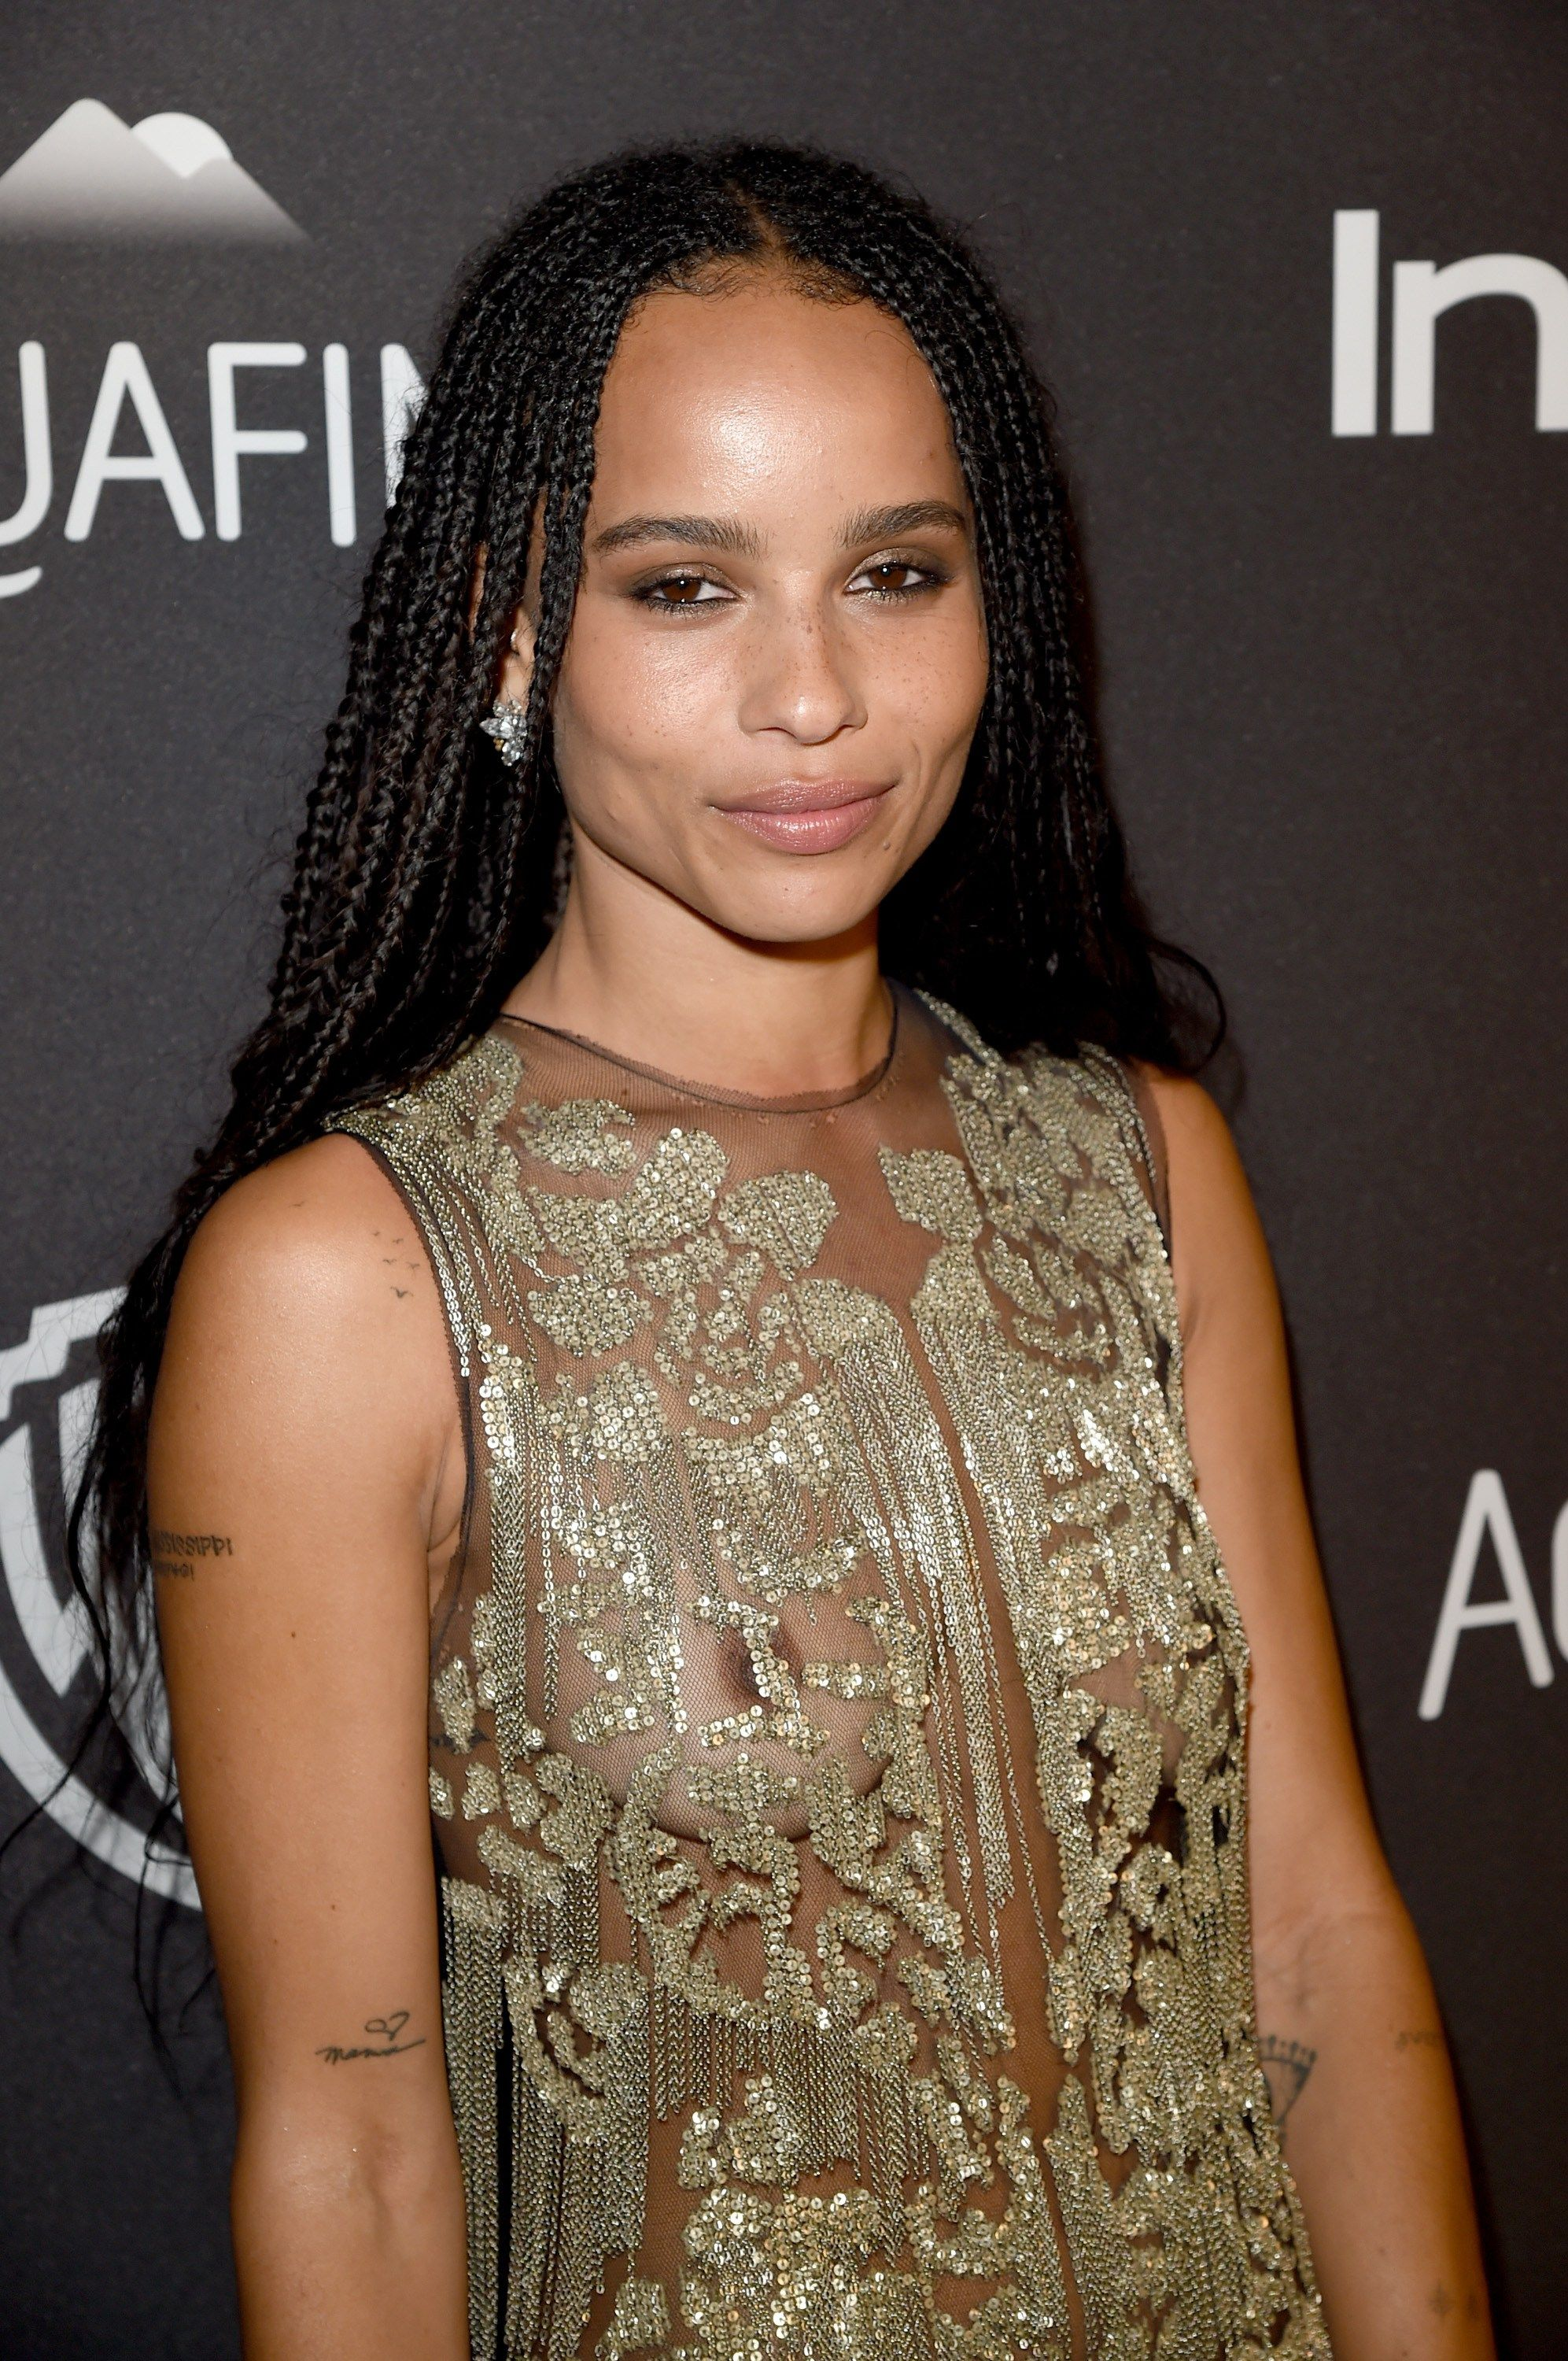 Hacked Zoe Kravitz naked (15 photos), Pussy, Fappening, Selfie, butt 2018